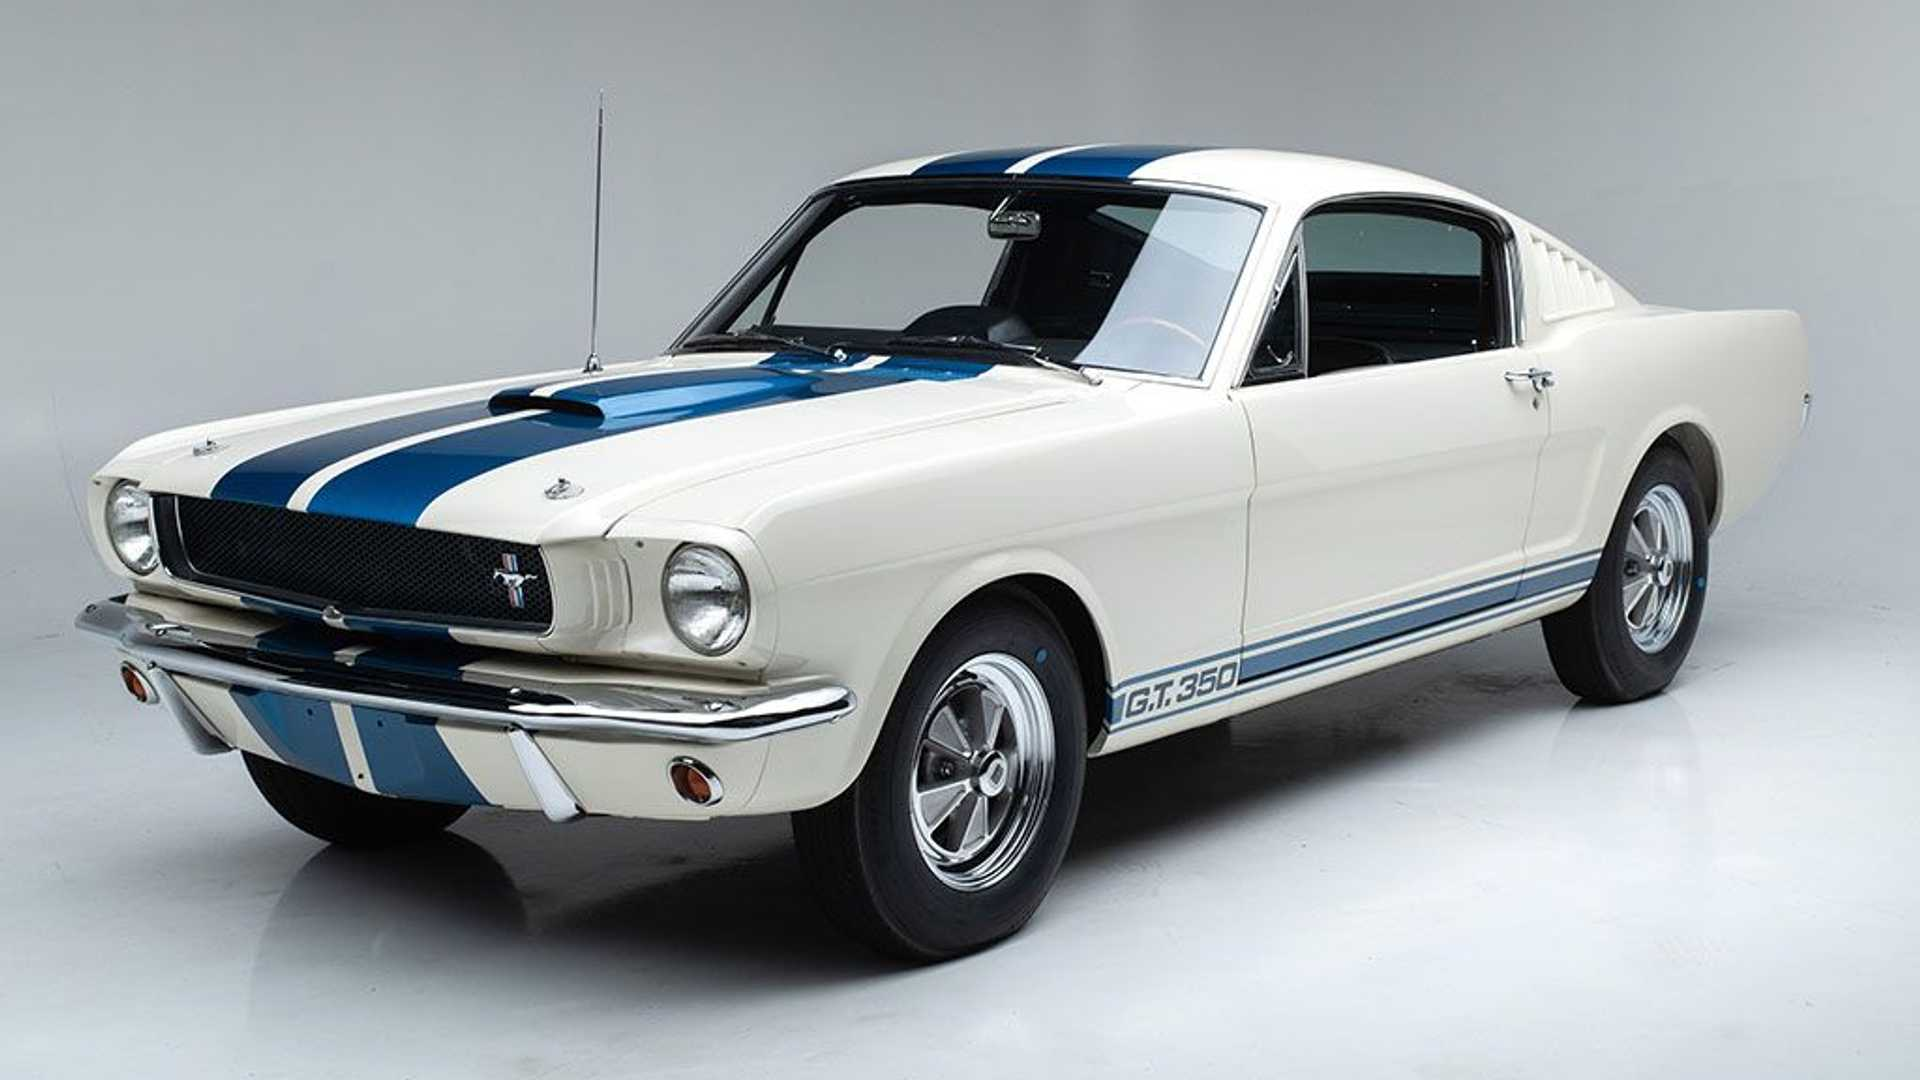 Barrett-Jackson CEO Auctioning His Own Mustang Shelby GT350